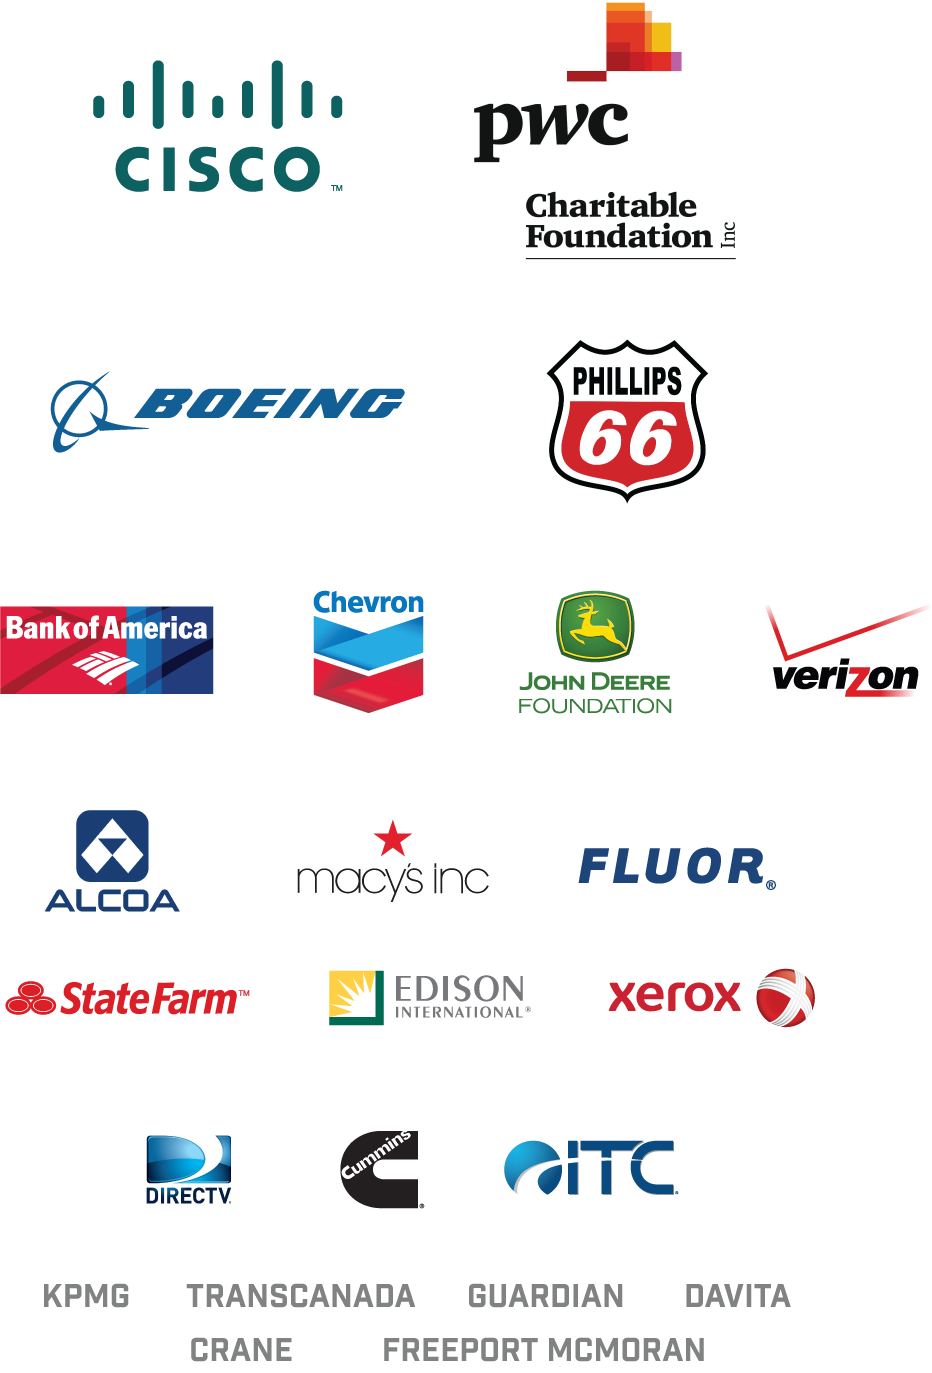 Business Roundtable Partners' Logos